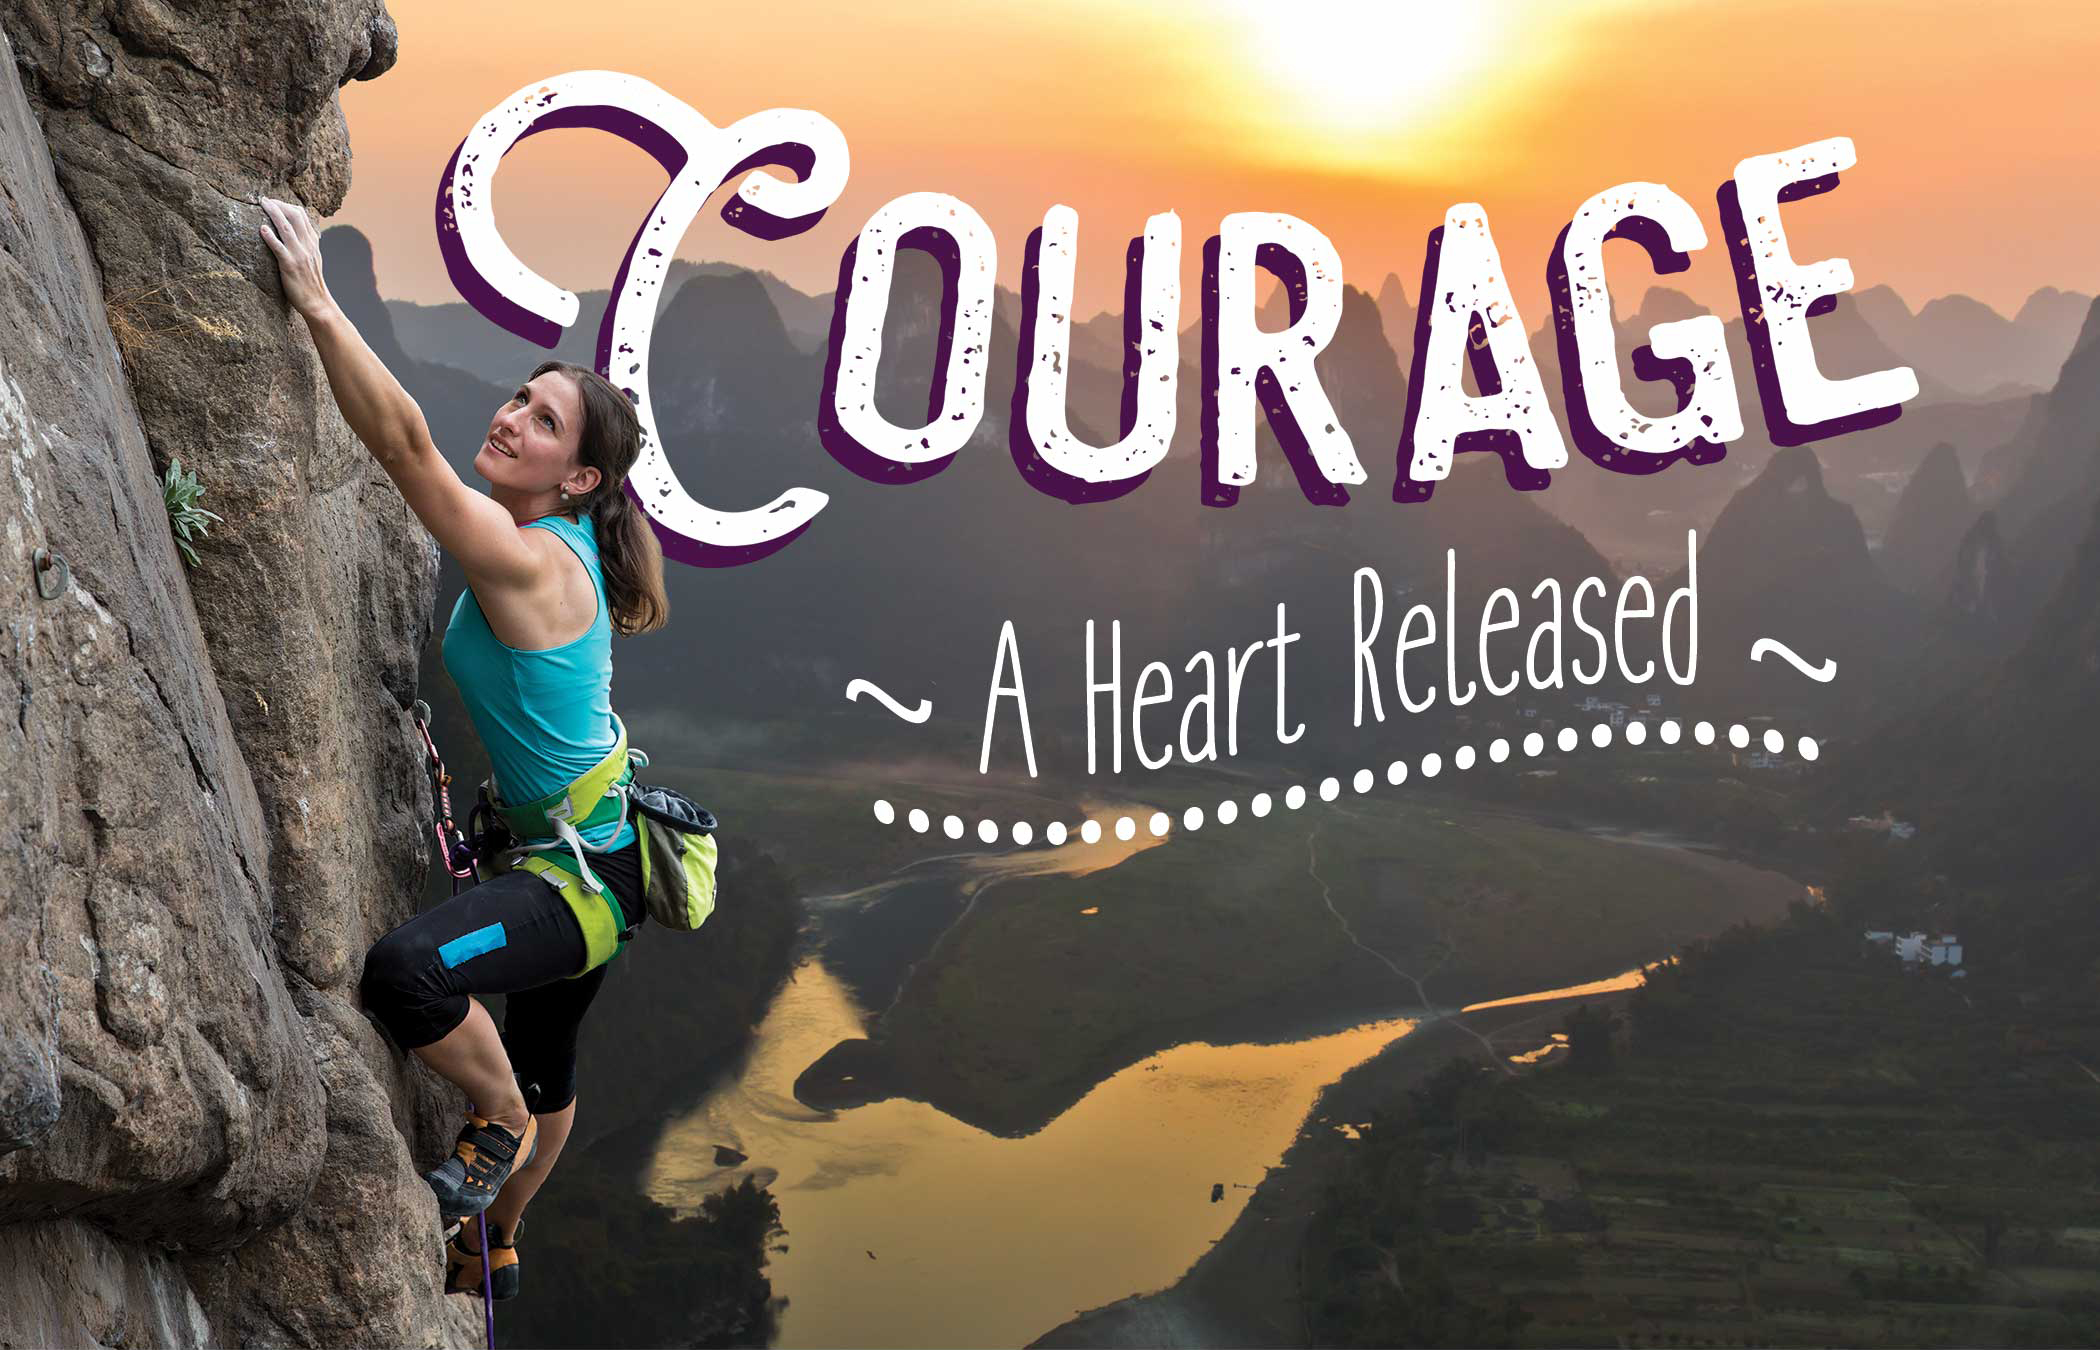 Courage - A Heart Released